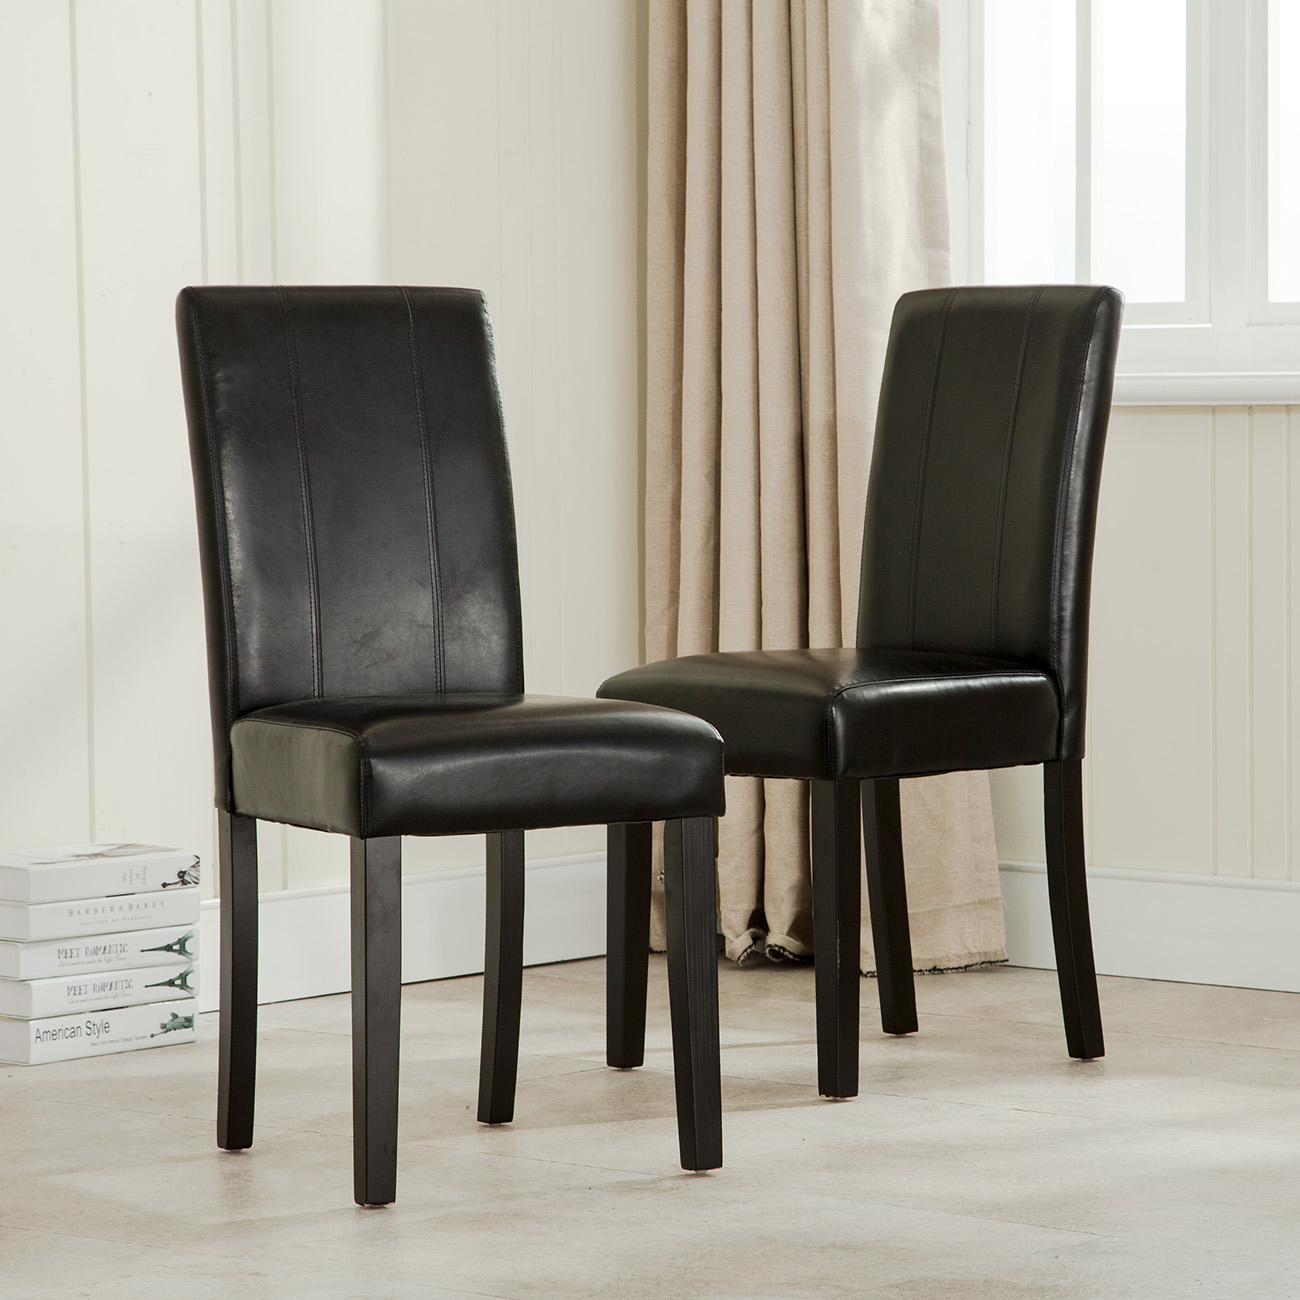 Set Of 2 Dining Chairs: Elegant Modern Parsons Chair Leather Dining Living Room